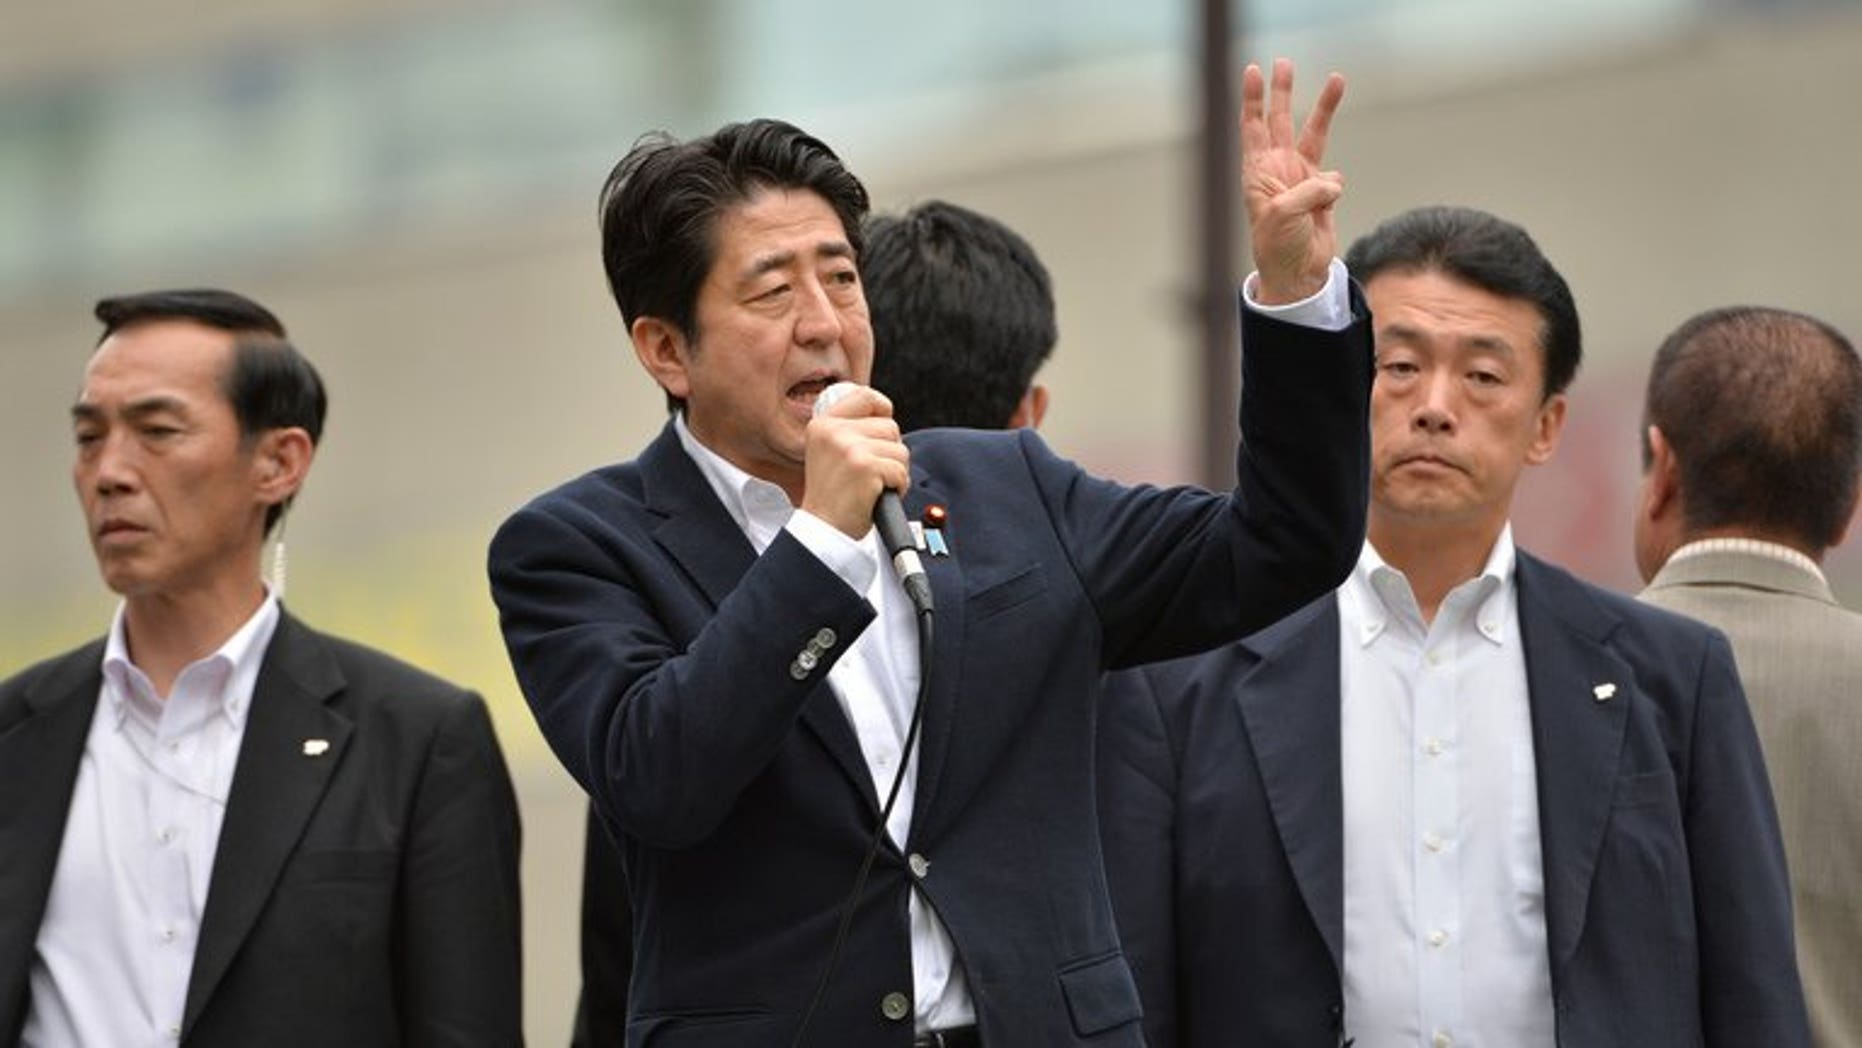 Japan's Prime Minister Shinzo Abe (C) delivers an election campaign speech in Tokyo's Ikebukuro, on July 4, 2013. Abe's ruling bloc is set to secure a majority in the upper house in this month's election, according to newspaper polls.